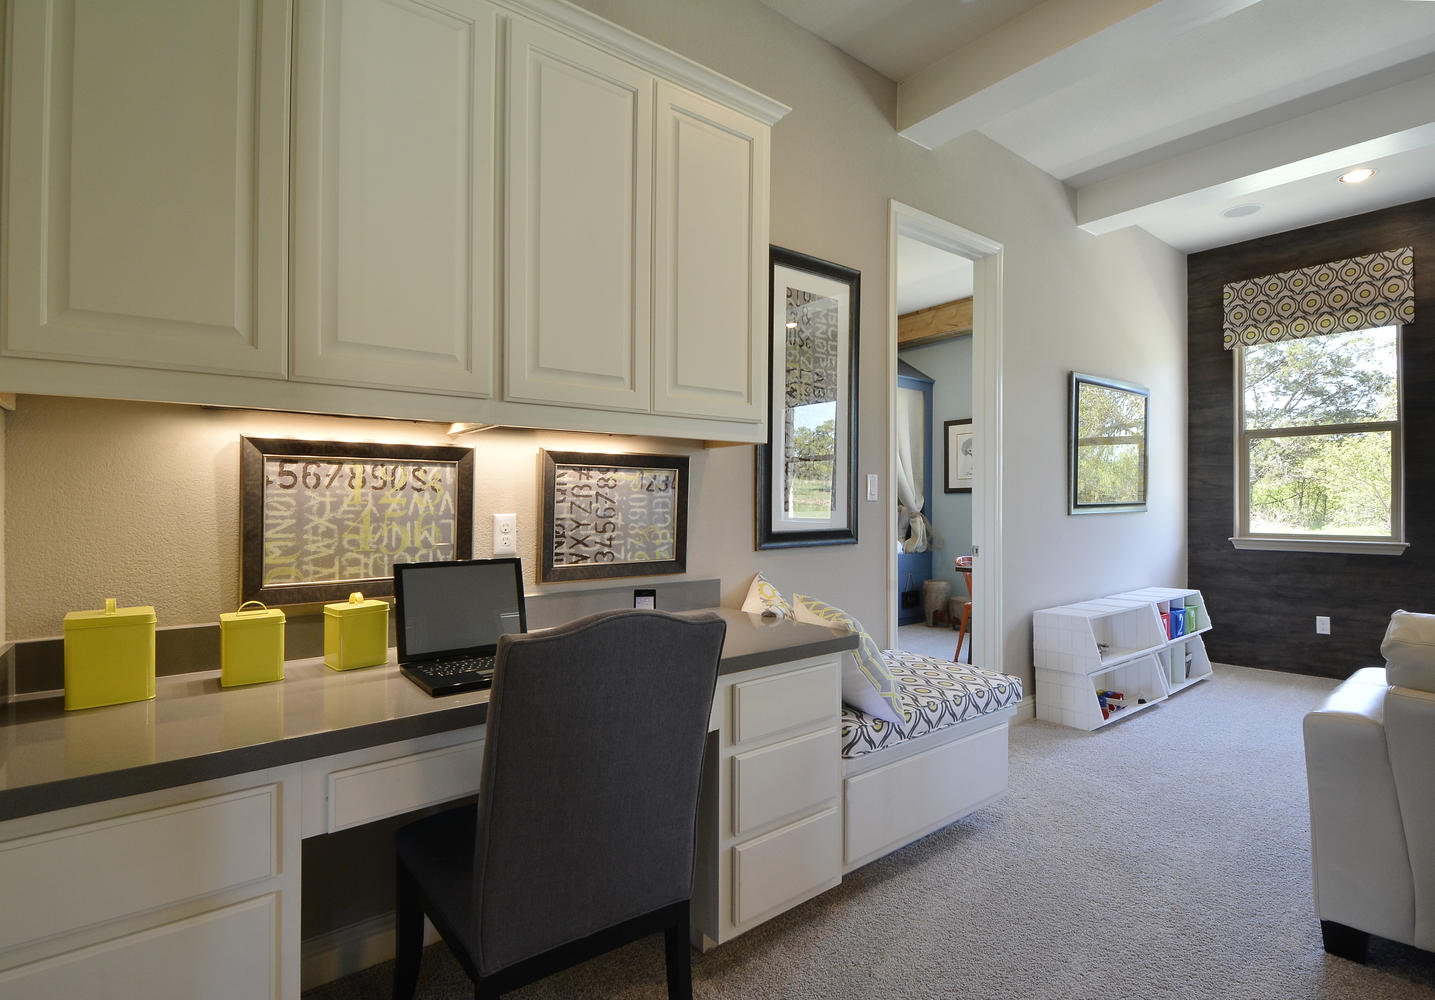 Burrows Cabinets' built in desk cabinets with bench seat in Bone white